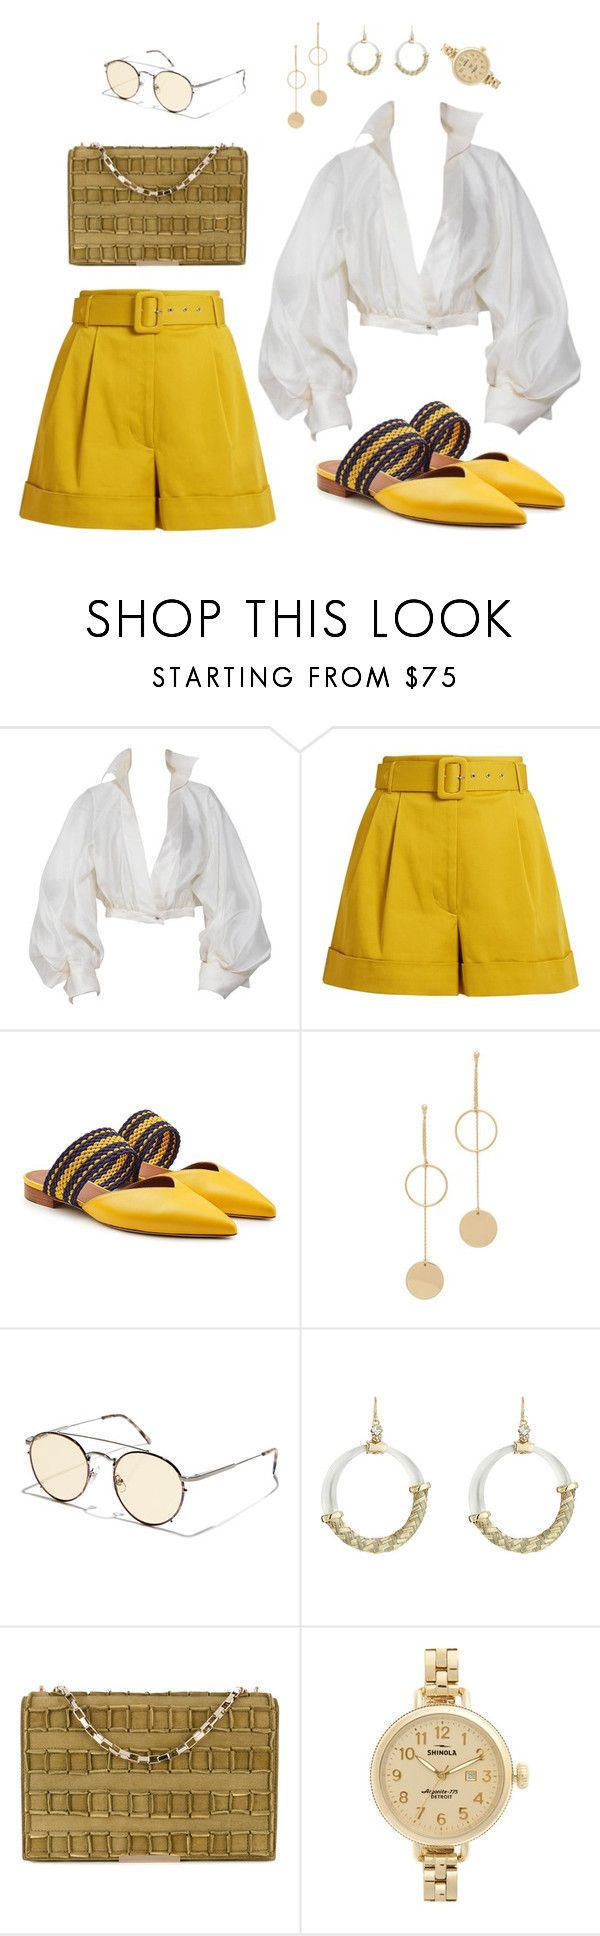 """""""Untitled #82"""" by cameronquittner ❤ liked on Polyvore featuring Claude Montana, Isa Arfen, Malone Souliers, Cloverpost, Crap, Alexis Bittar, Tomasini and Shinola"""